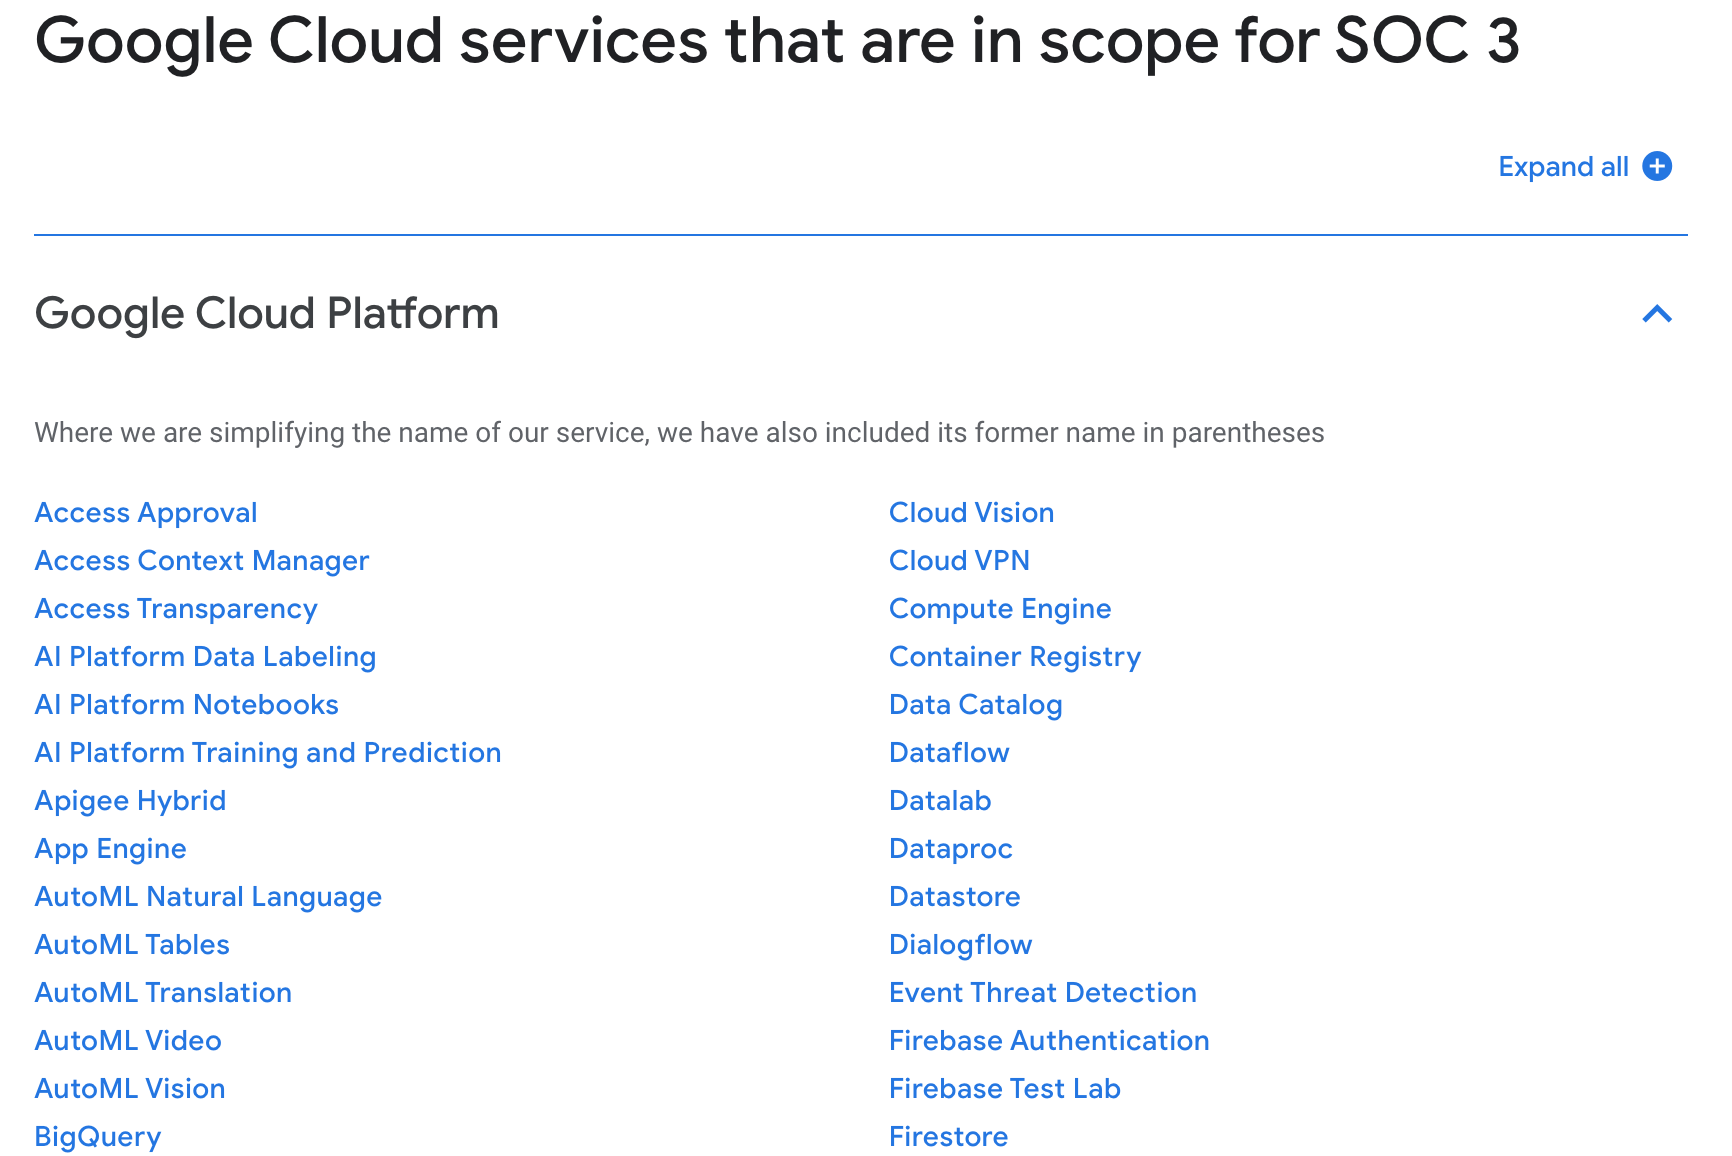 Google Cloud services in scope for SOC compliance